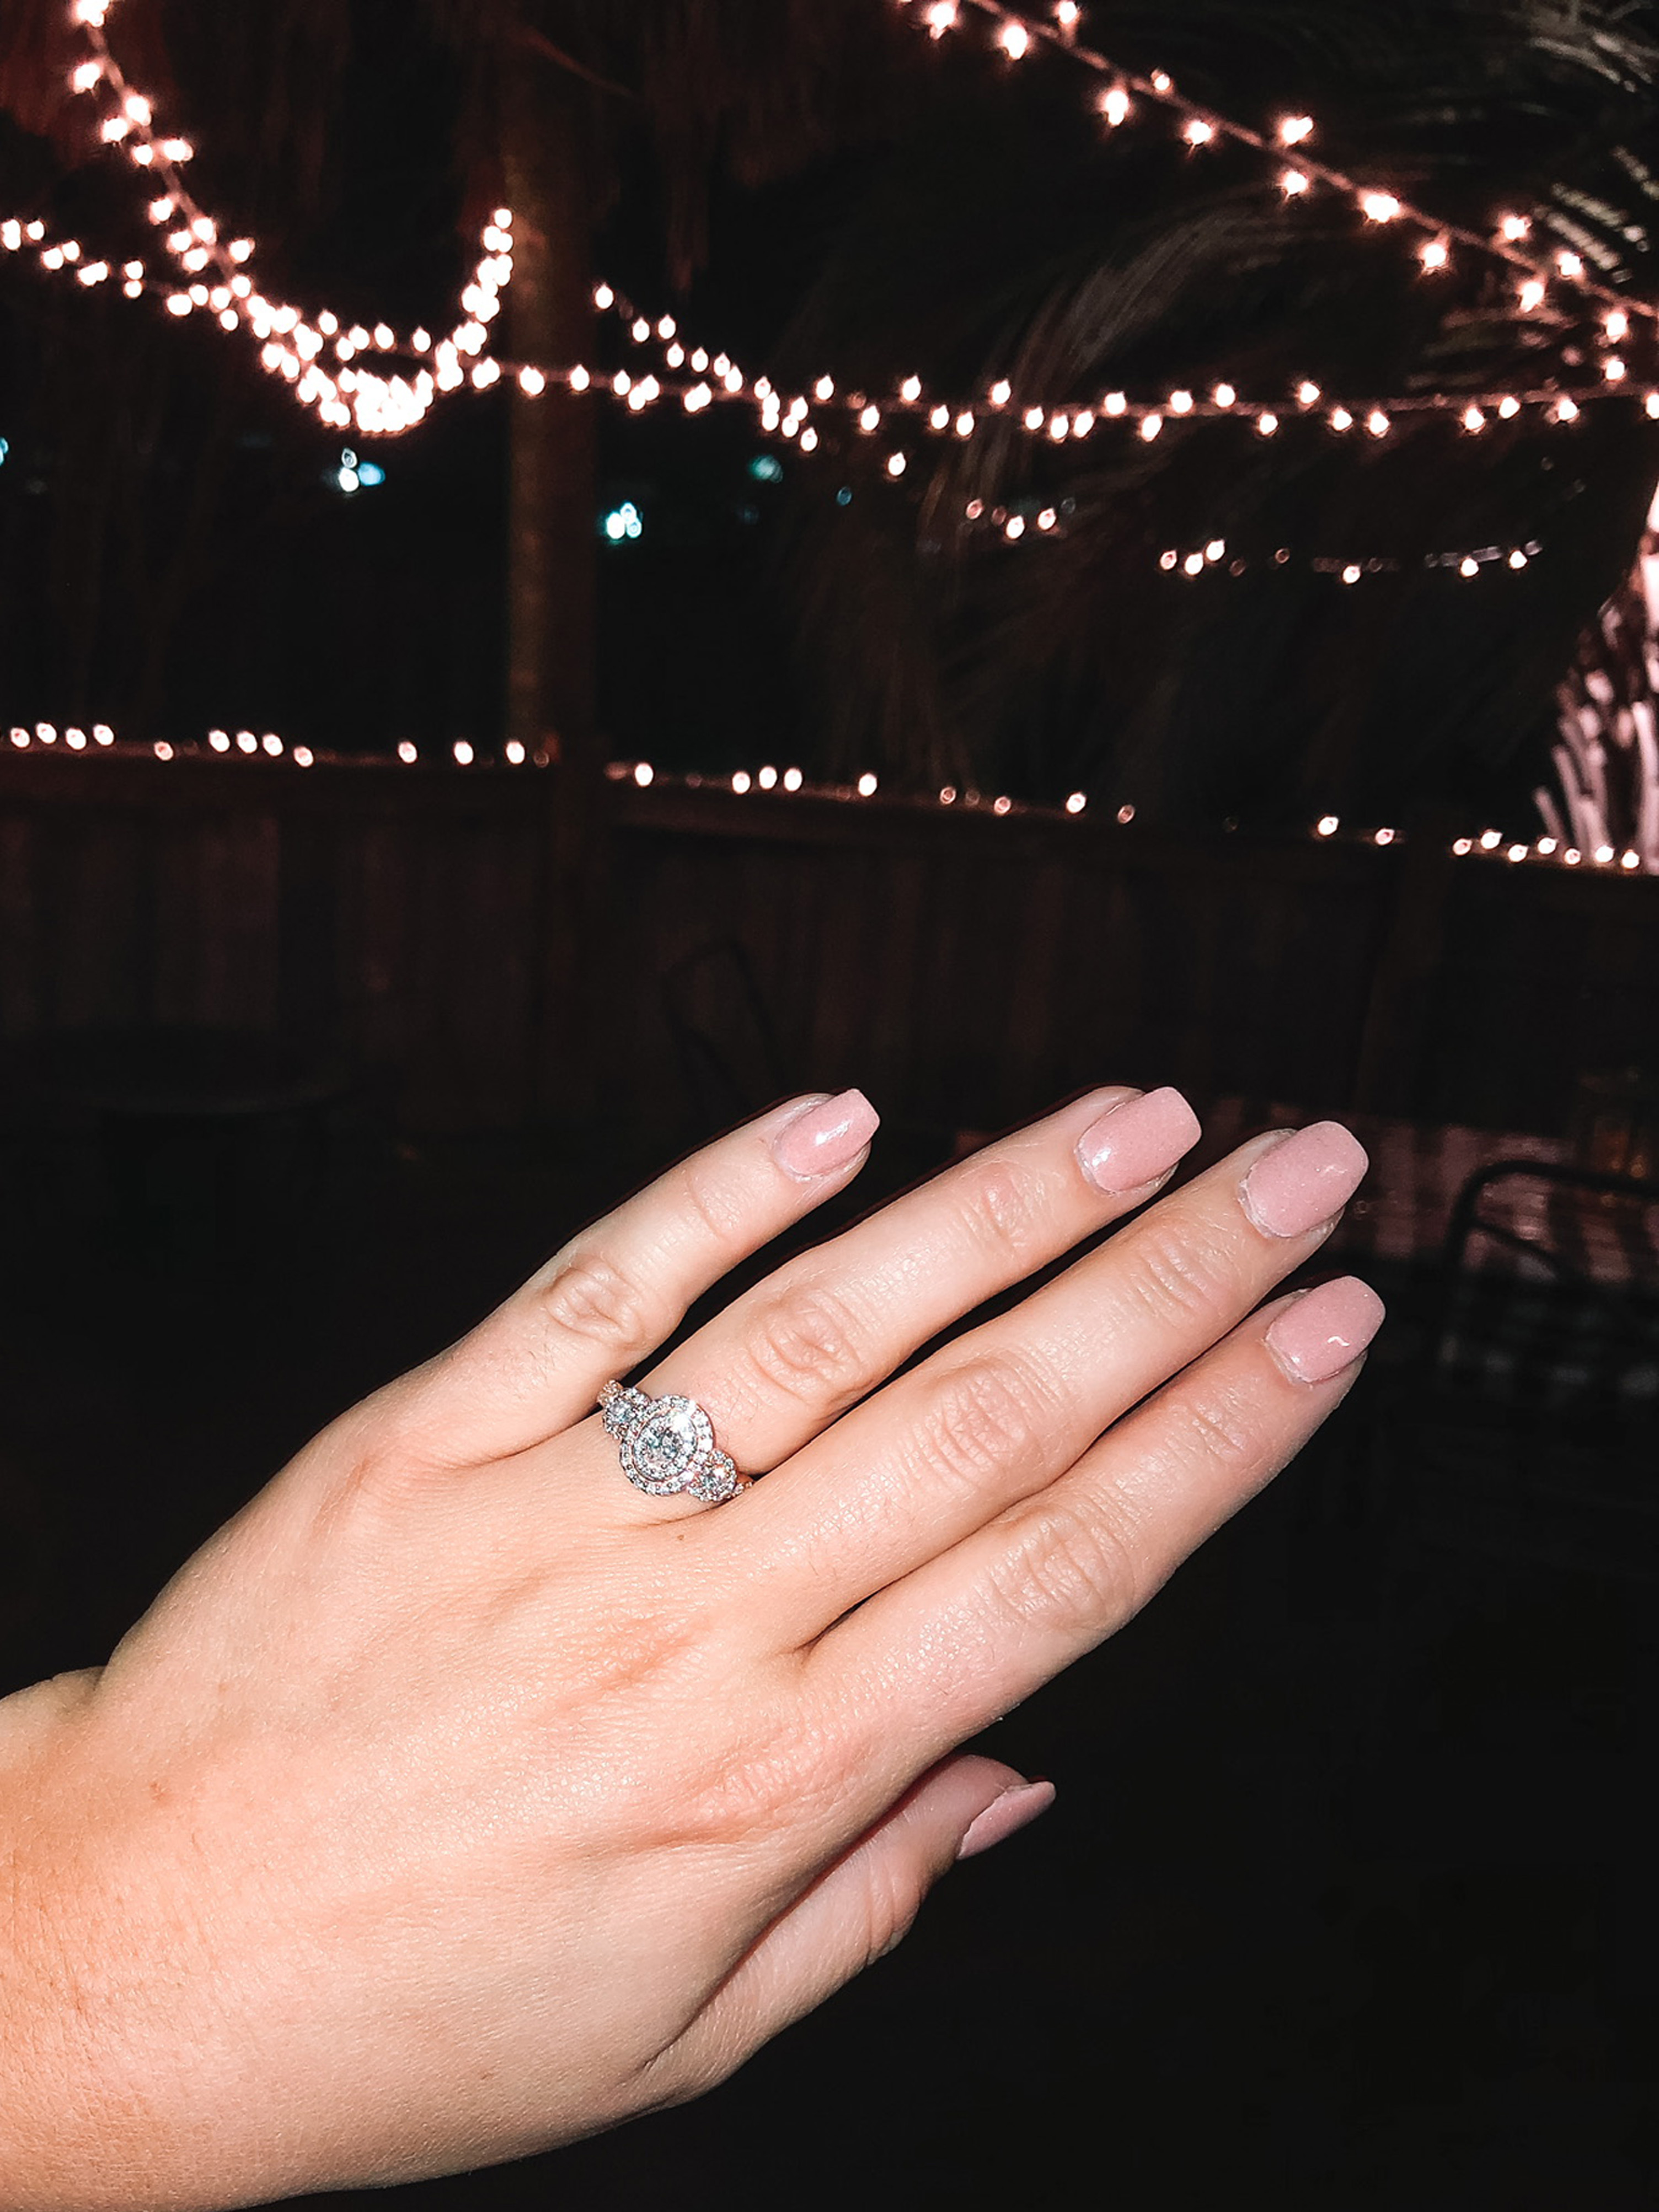 Couple who faked engagement show off real ring